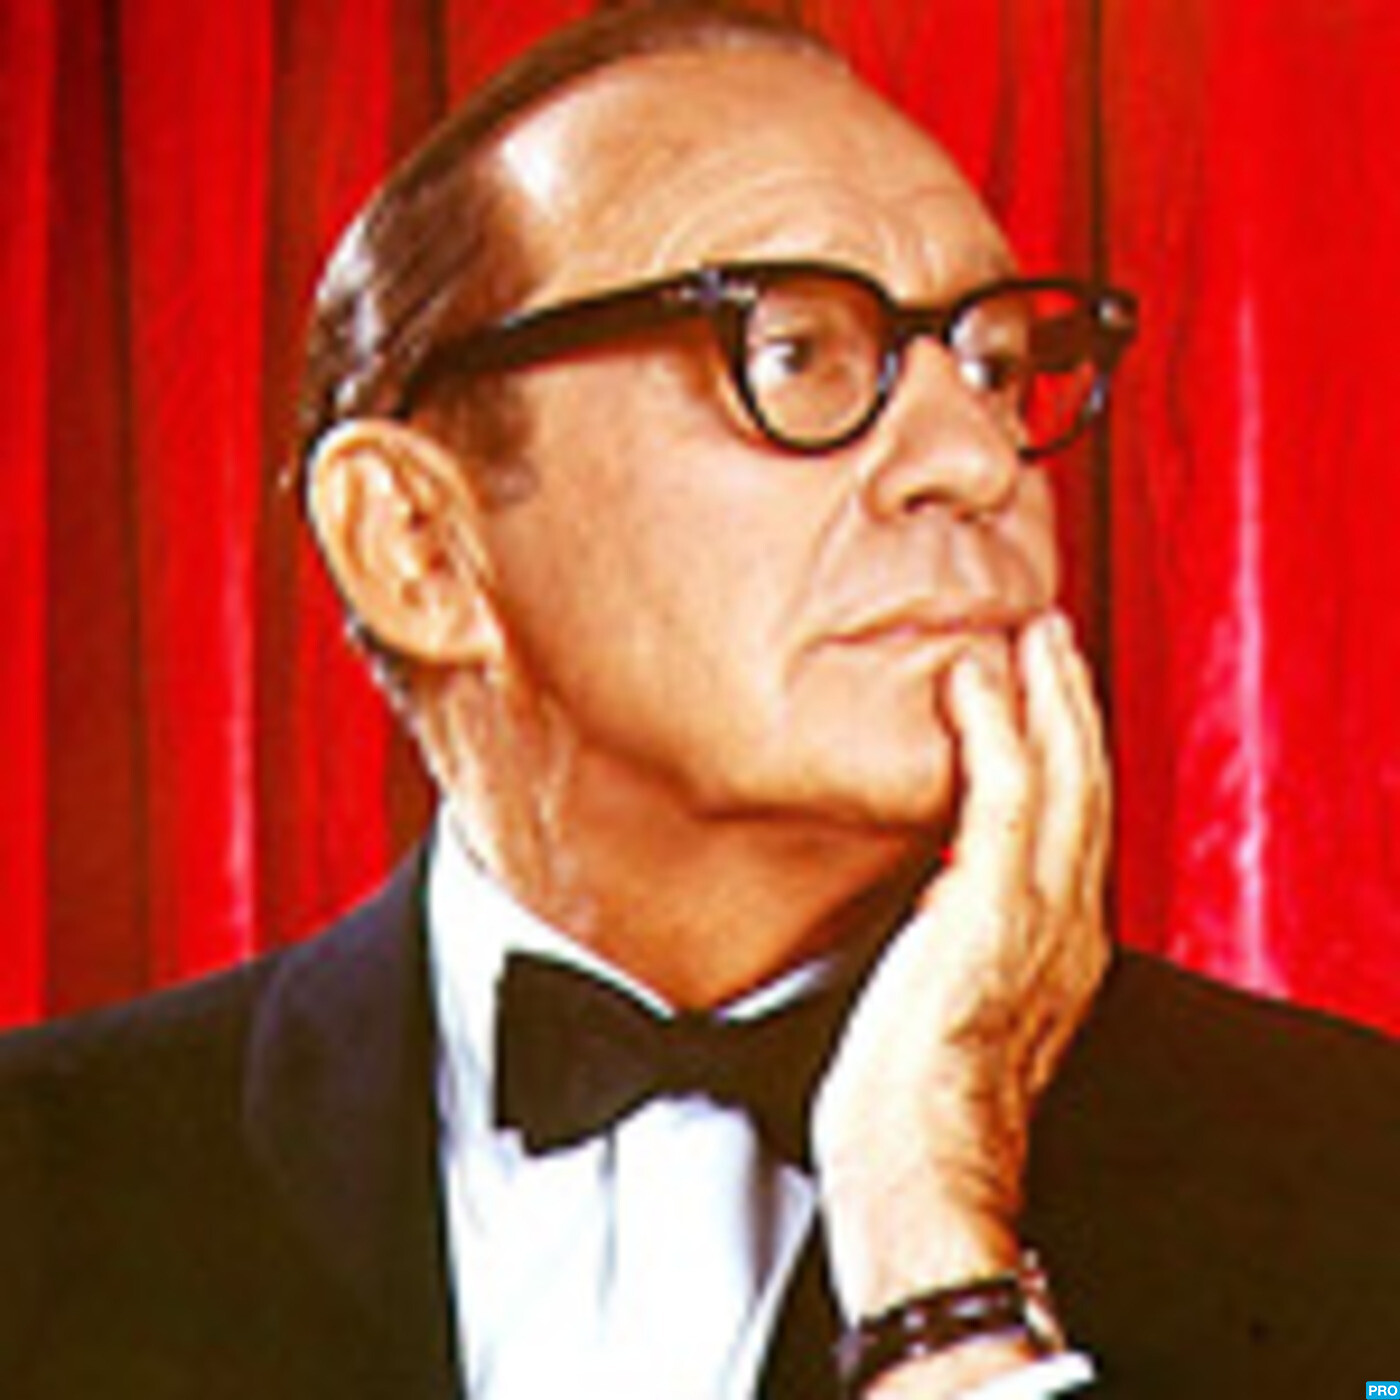 Jack Benny Podcast 1950-04-02 (727) Guest Al Jolson from Palm Springs, PHAF 1950-04-02 The Flying Saucer, Jack Benny ...